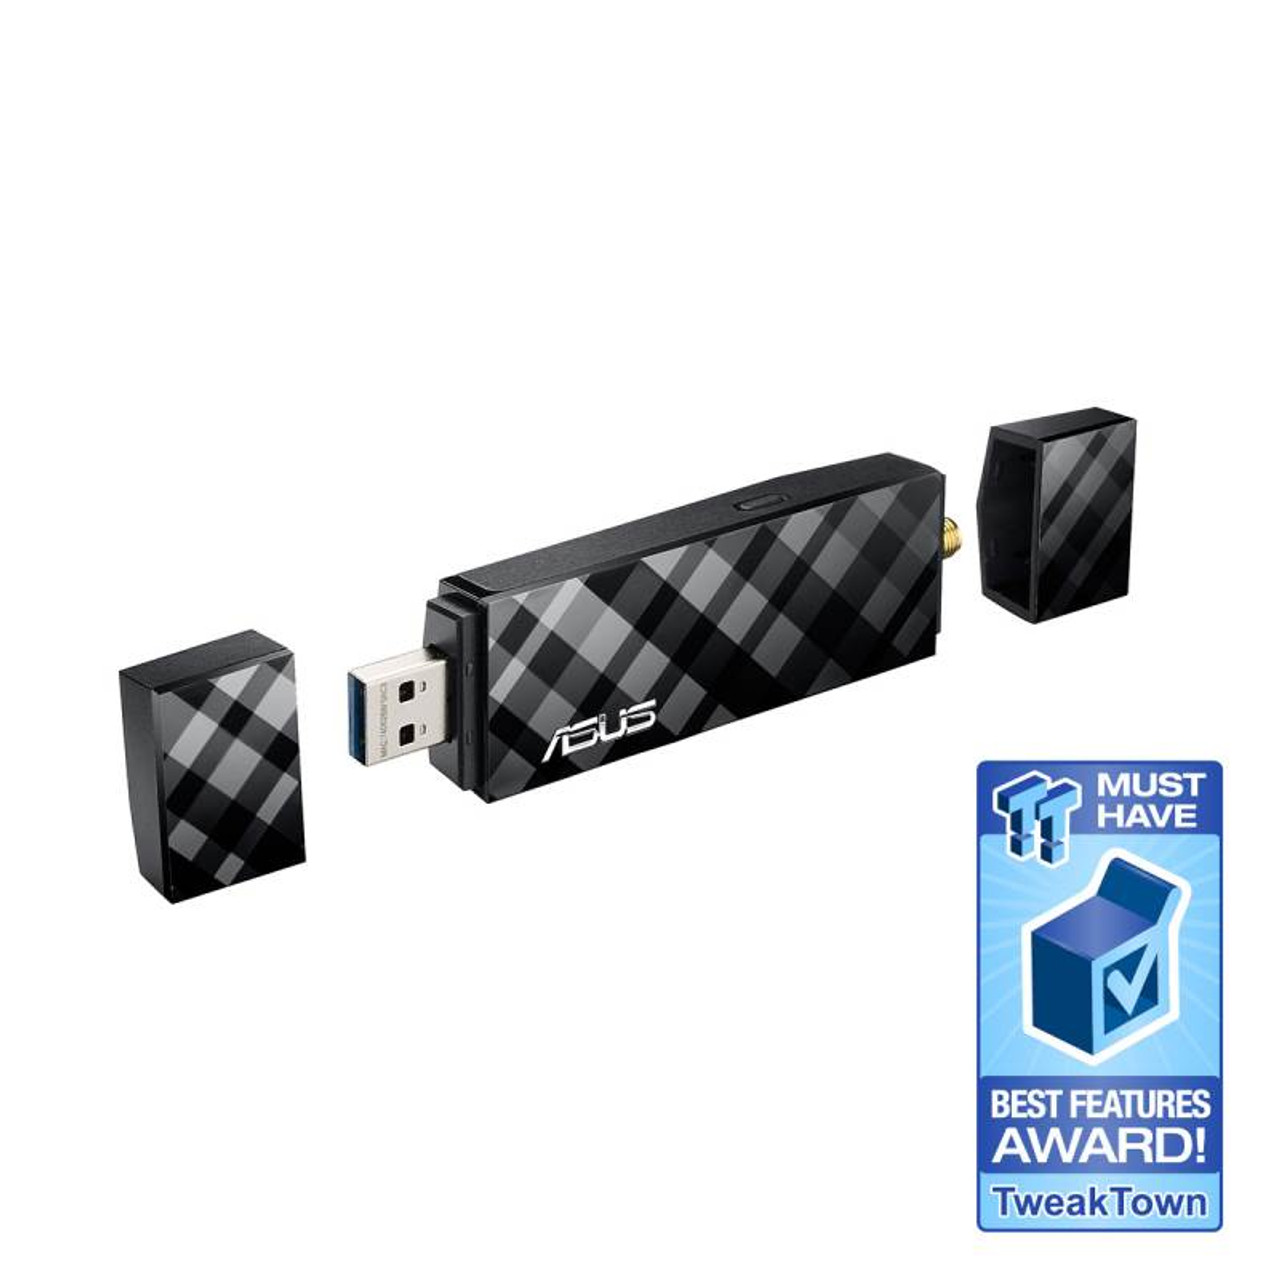 Image for Asus USB-AC56 Dual-band Wireless-AC1300 USB 3.0 Wi-Fi Adapter CX Computer Superstore